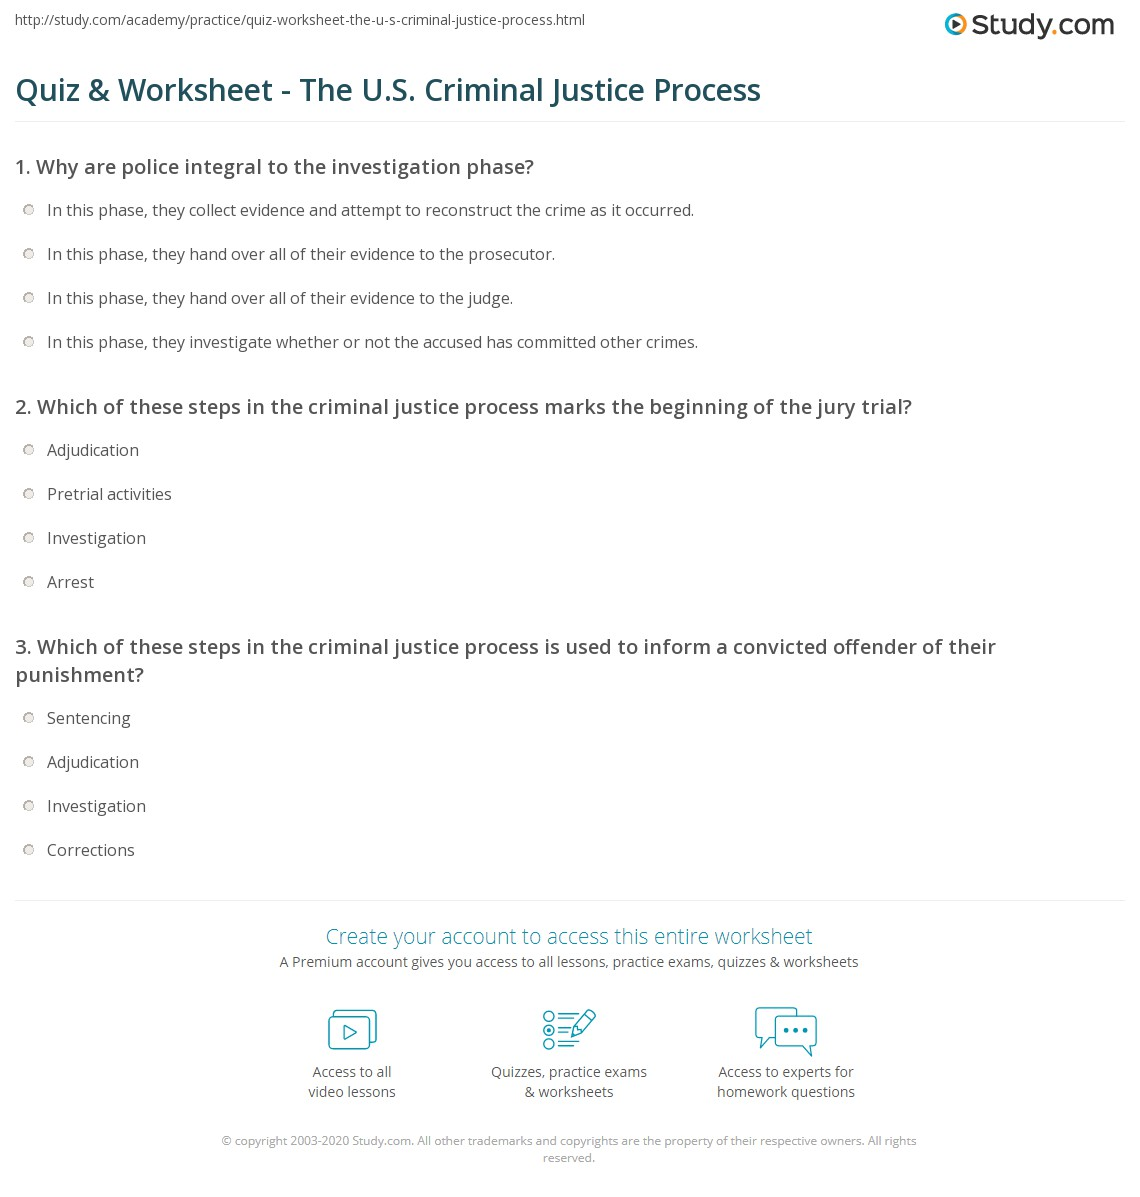 quiz worksheet the u s criminal justice process. Black Bedroom Furniture Sets. Home Design Ideas